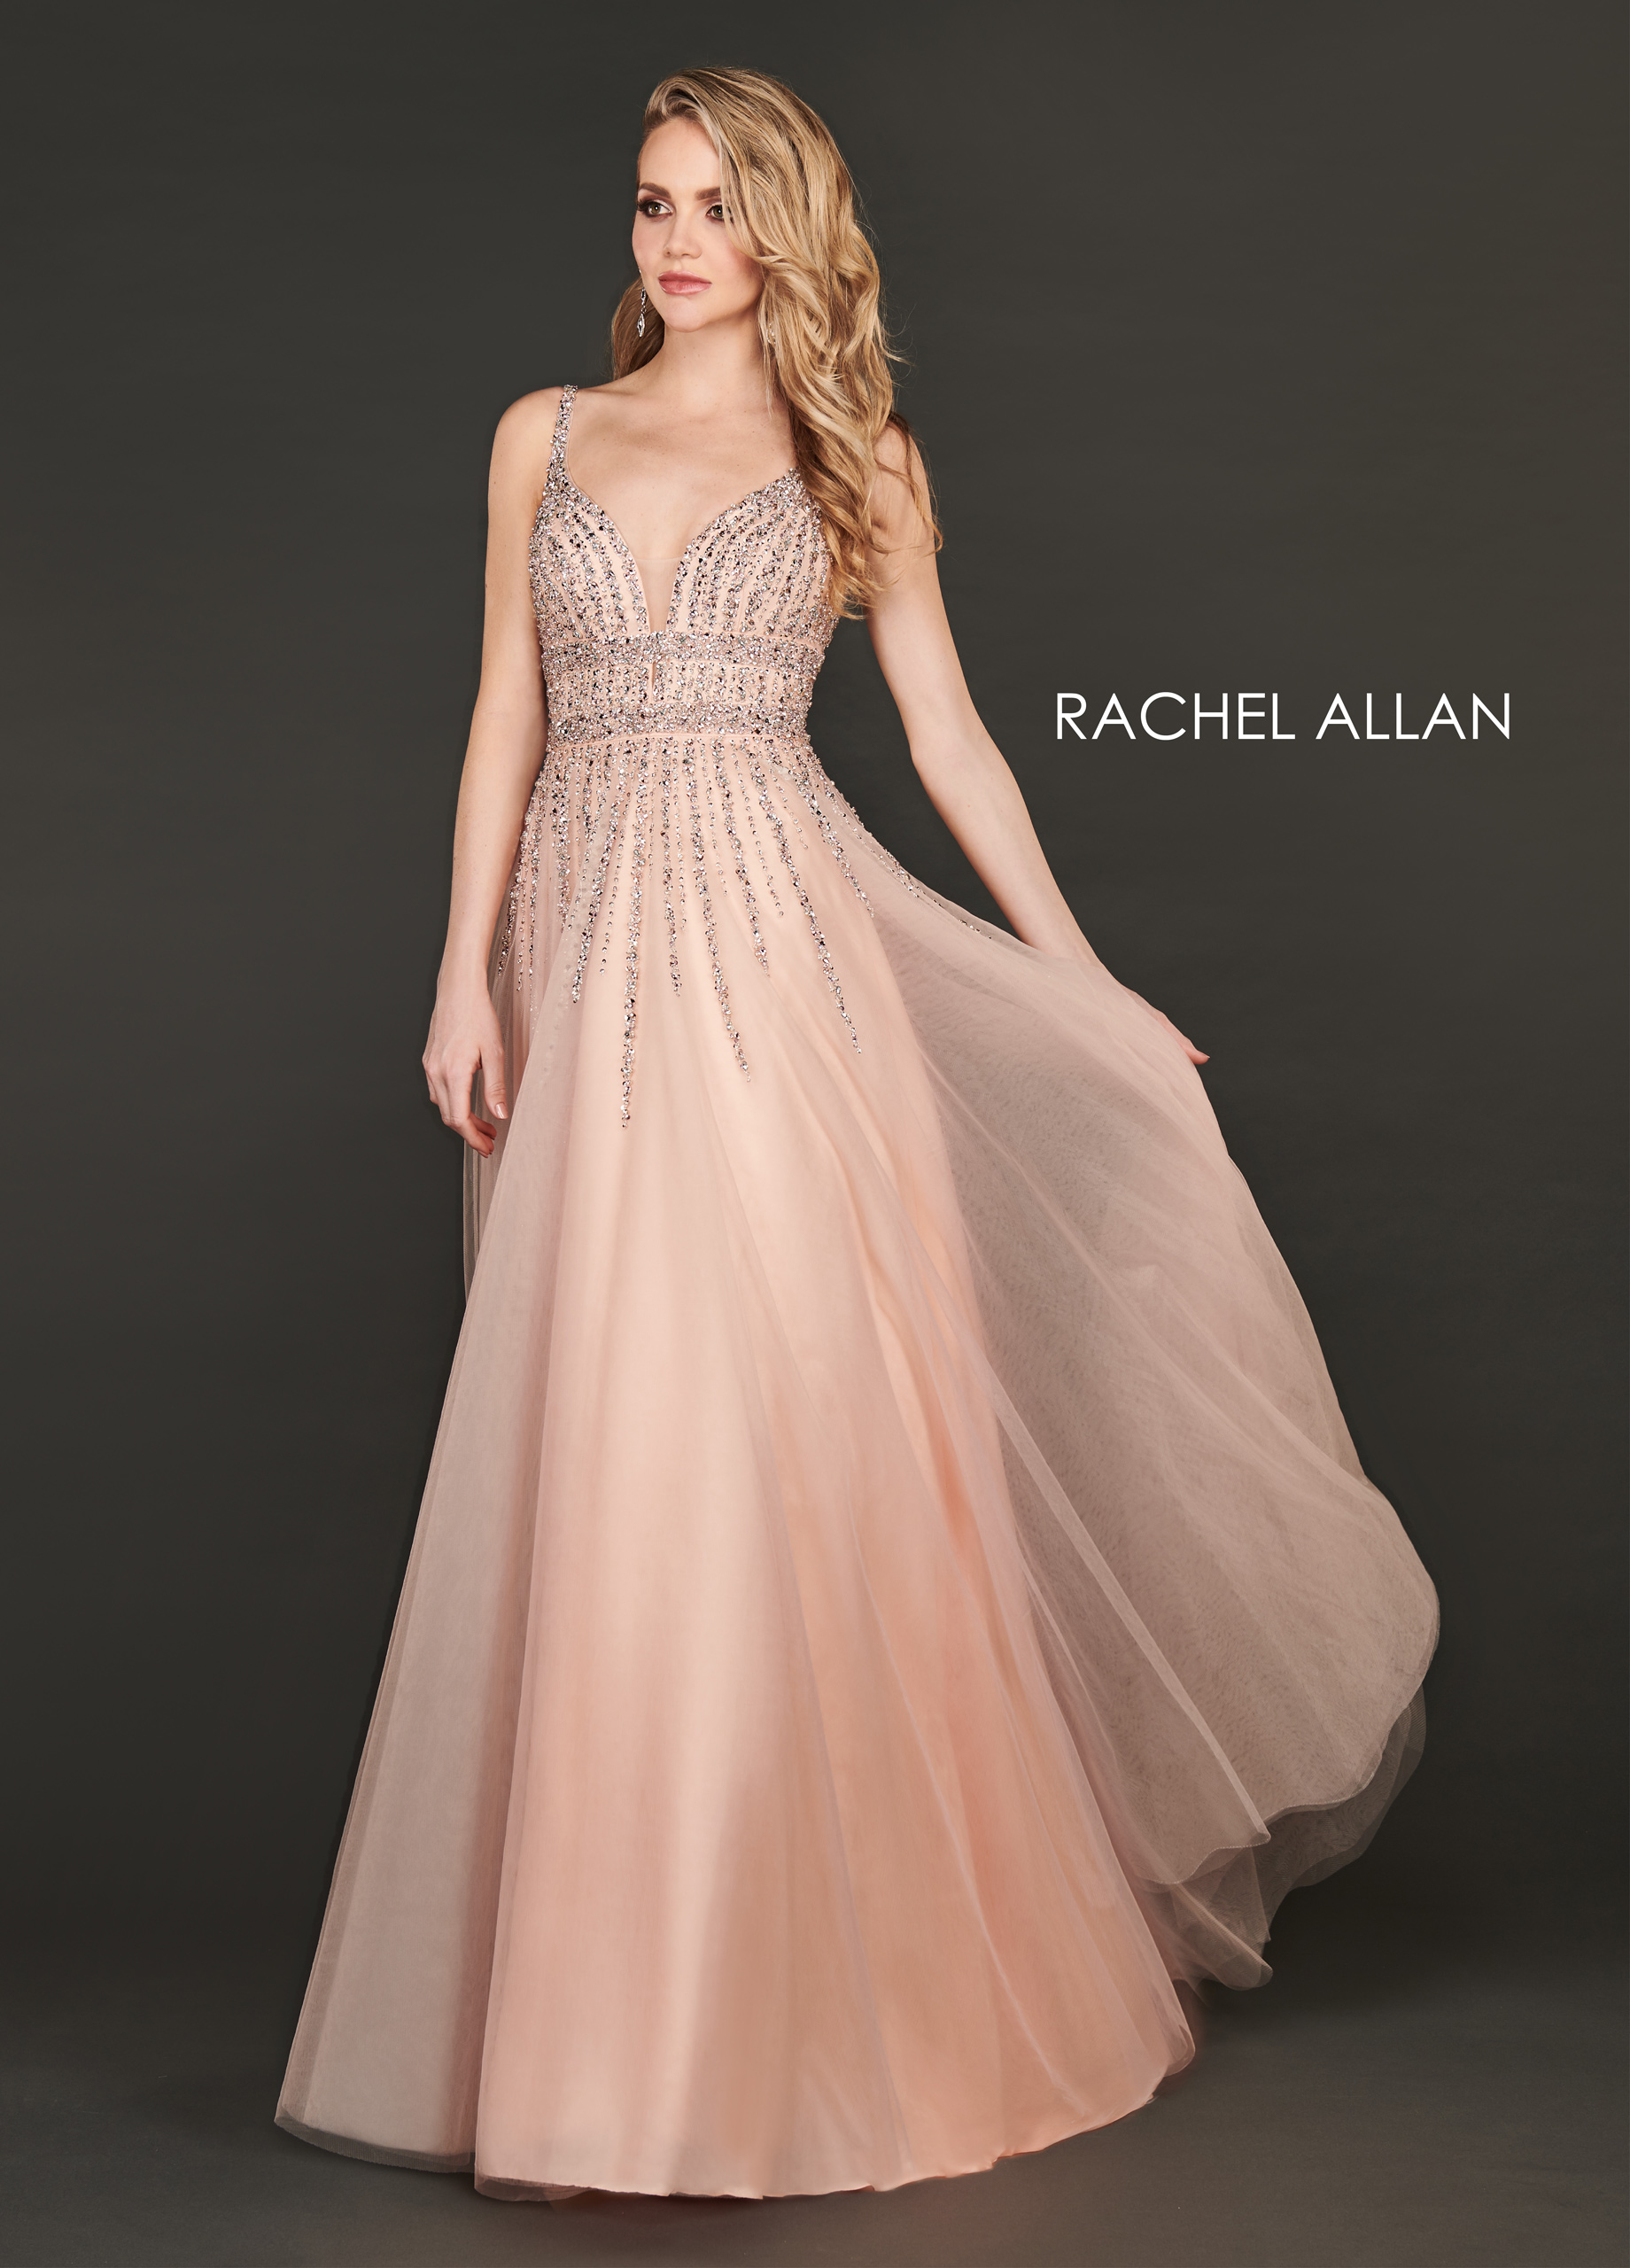 Sweetheart A-Line Couture Dresses in Blush Color